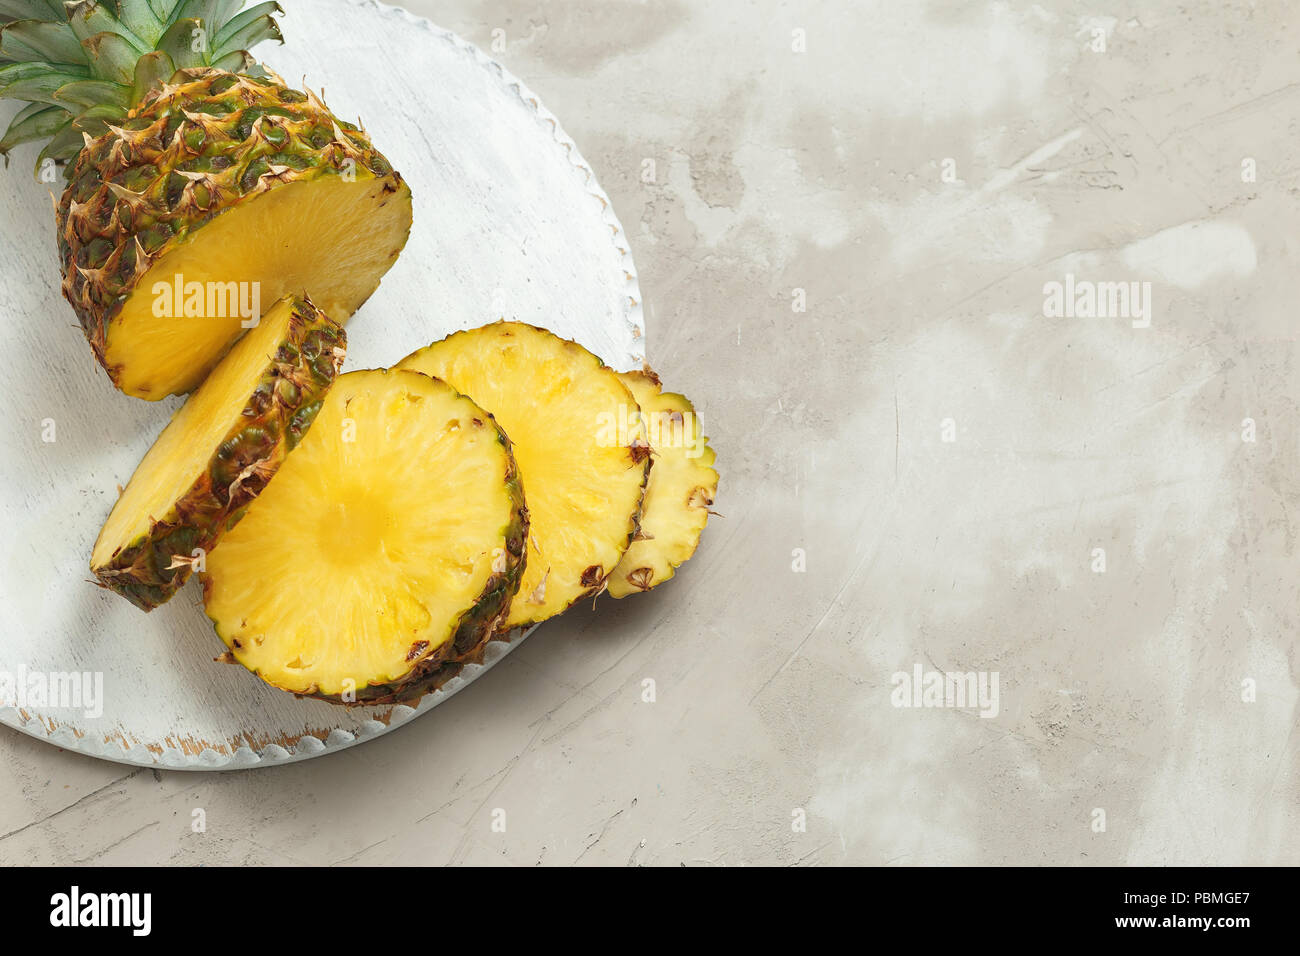 Fresh sliced pineapple on a white wooden cutting board. Concrete table backround. Top view, space for your text - Stock Image